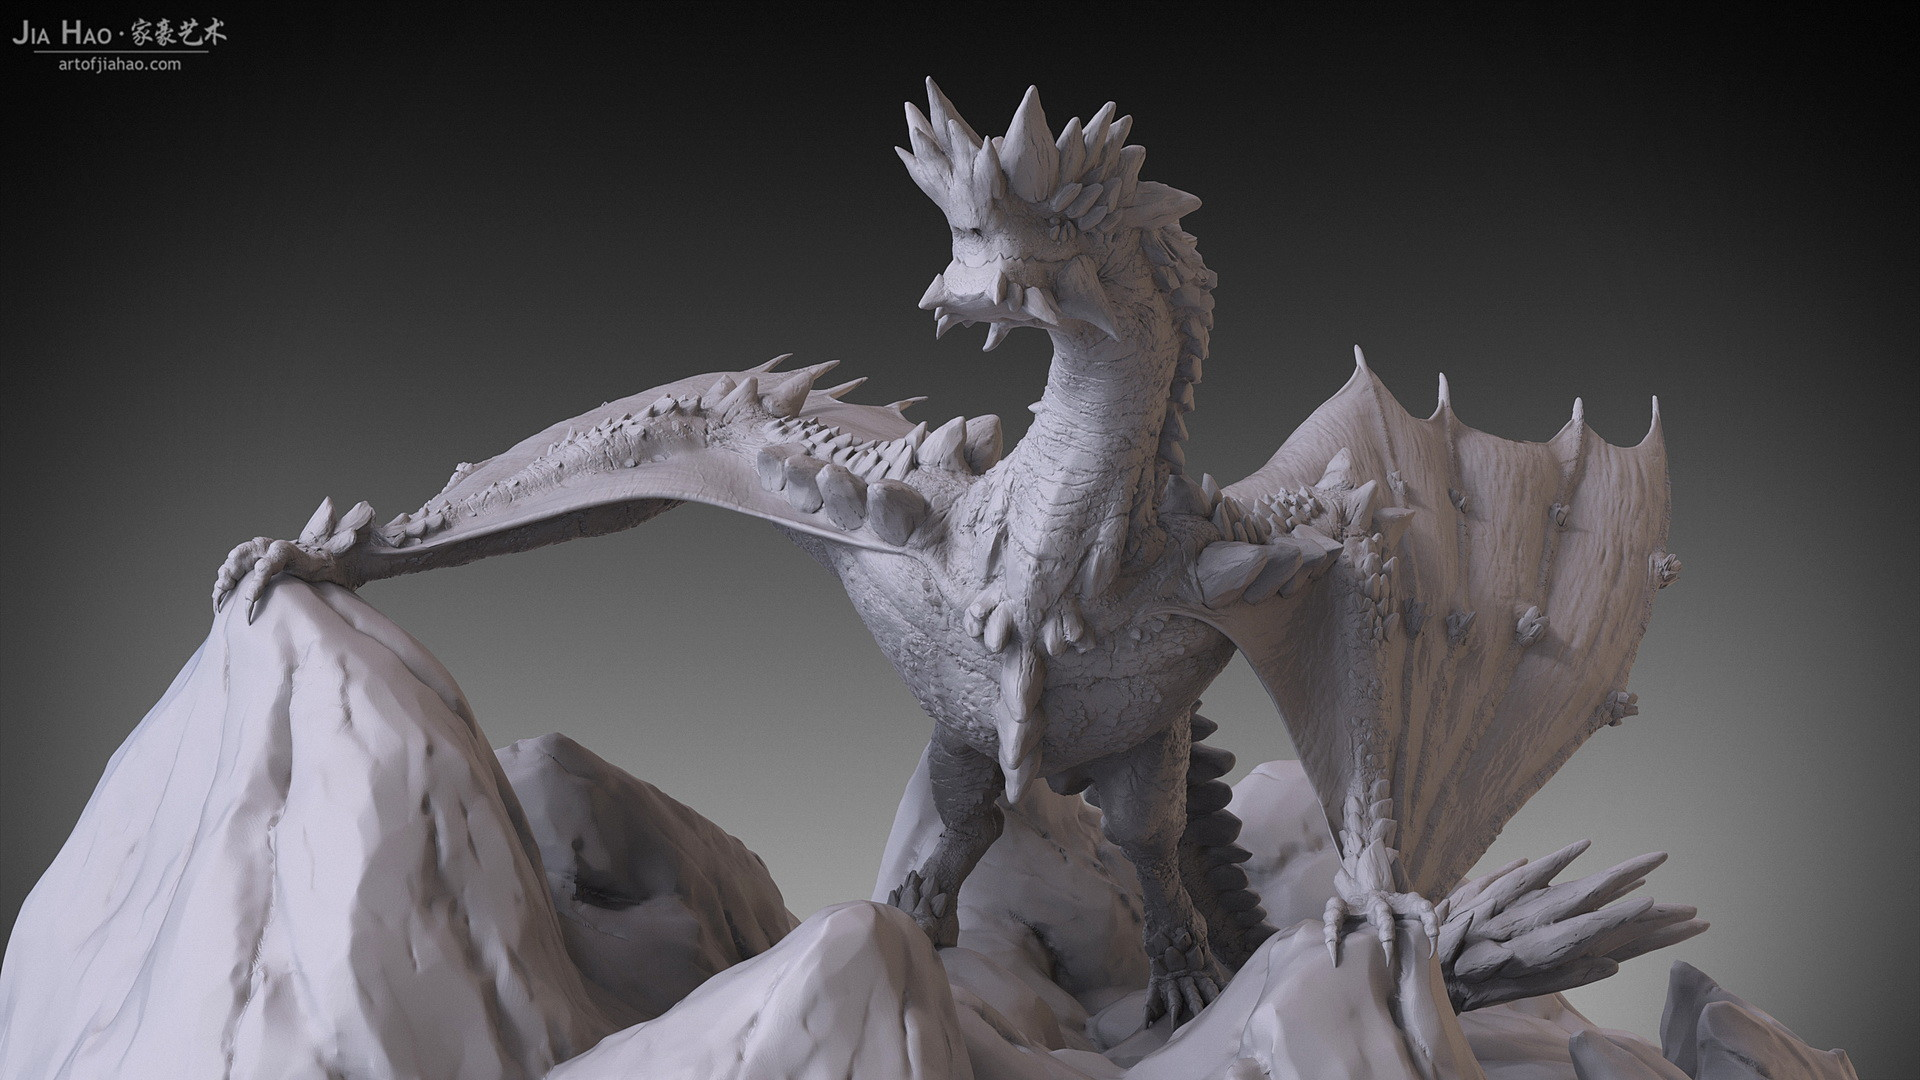 Jia hao 2017 rockdragon digitalsculpting 06